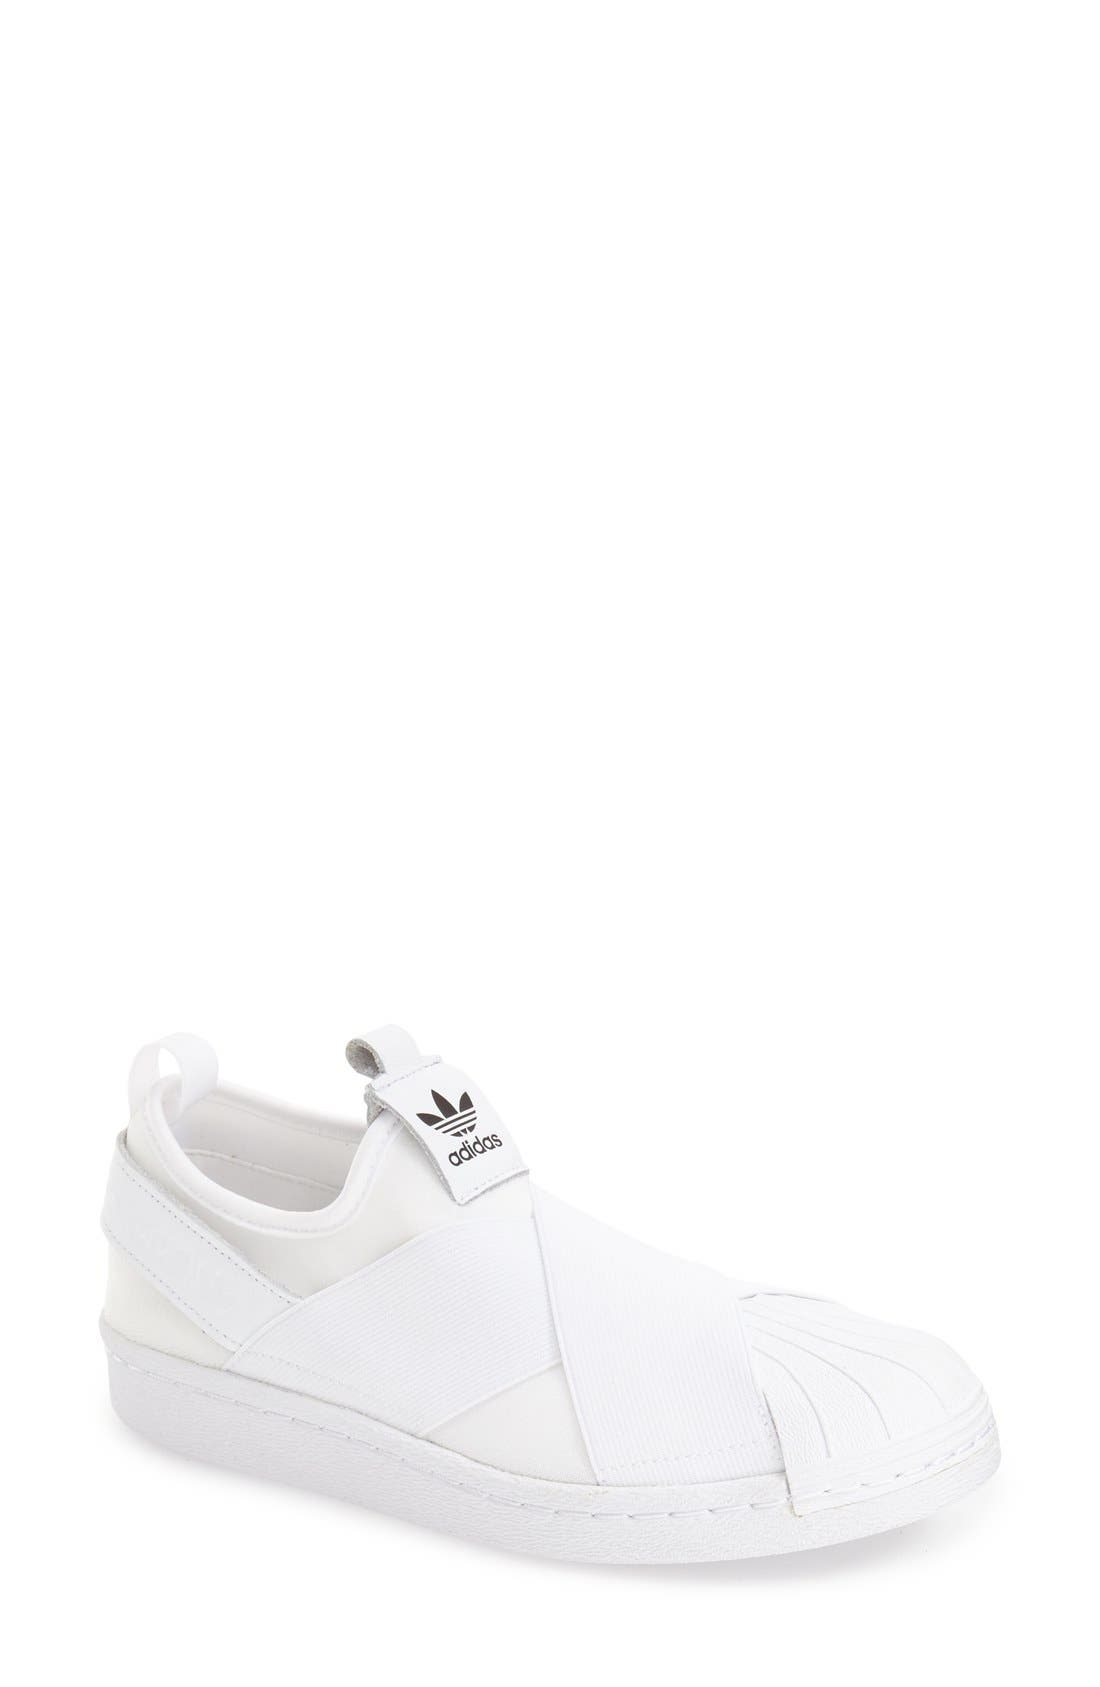 adidas Superstar Slip-On Sneaker (Women)